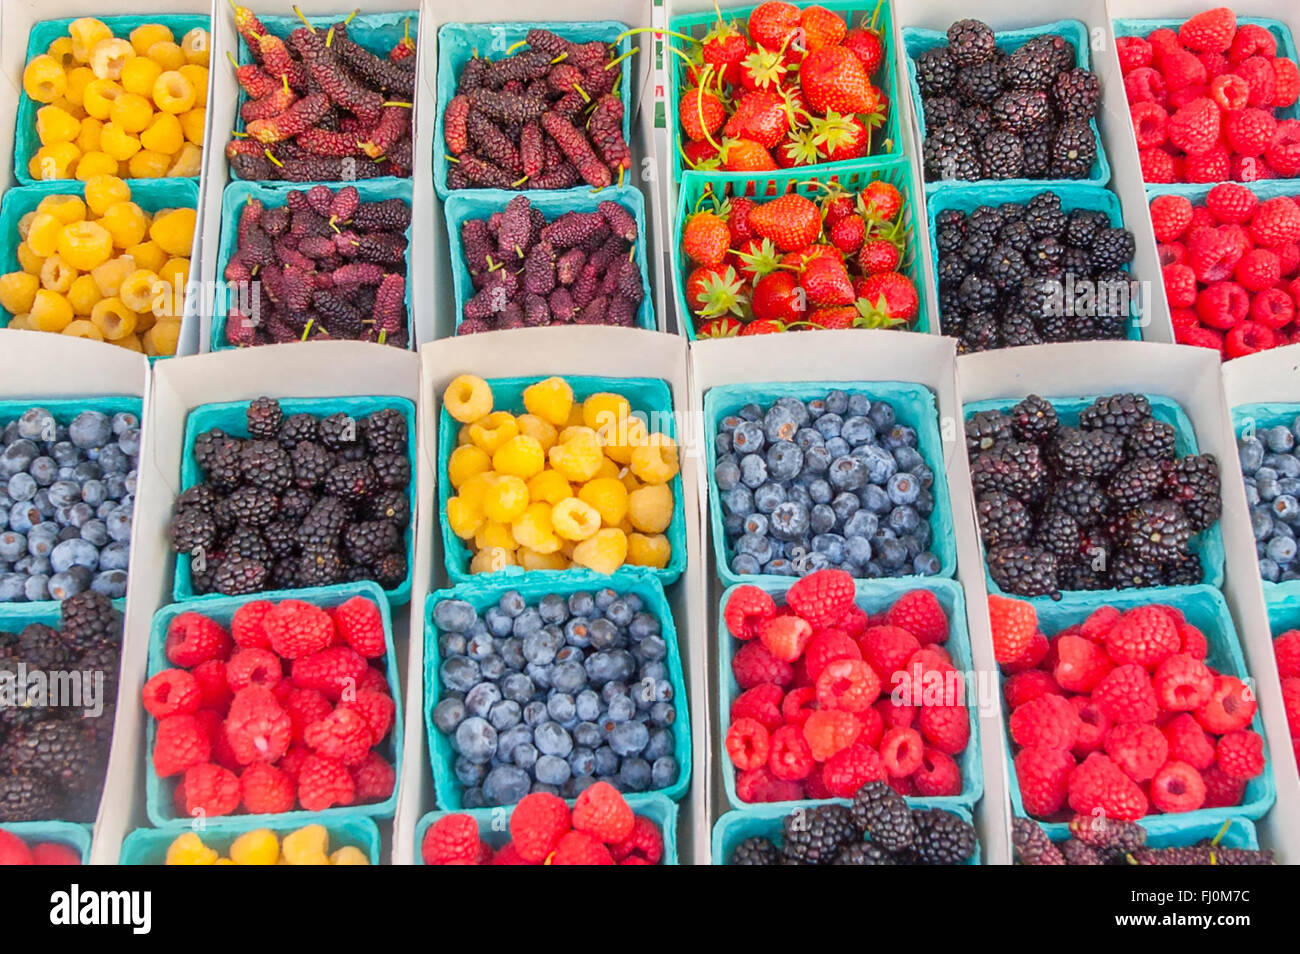 Farmers market - close up of berries in pint containers at a local farm stand / farmer's market in Santa Monica - Stock Image